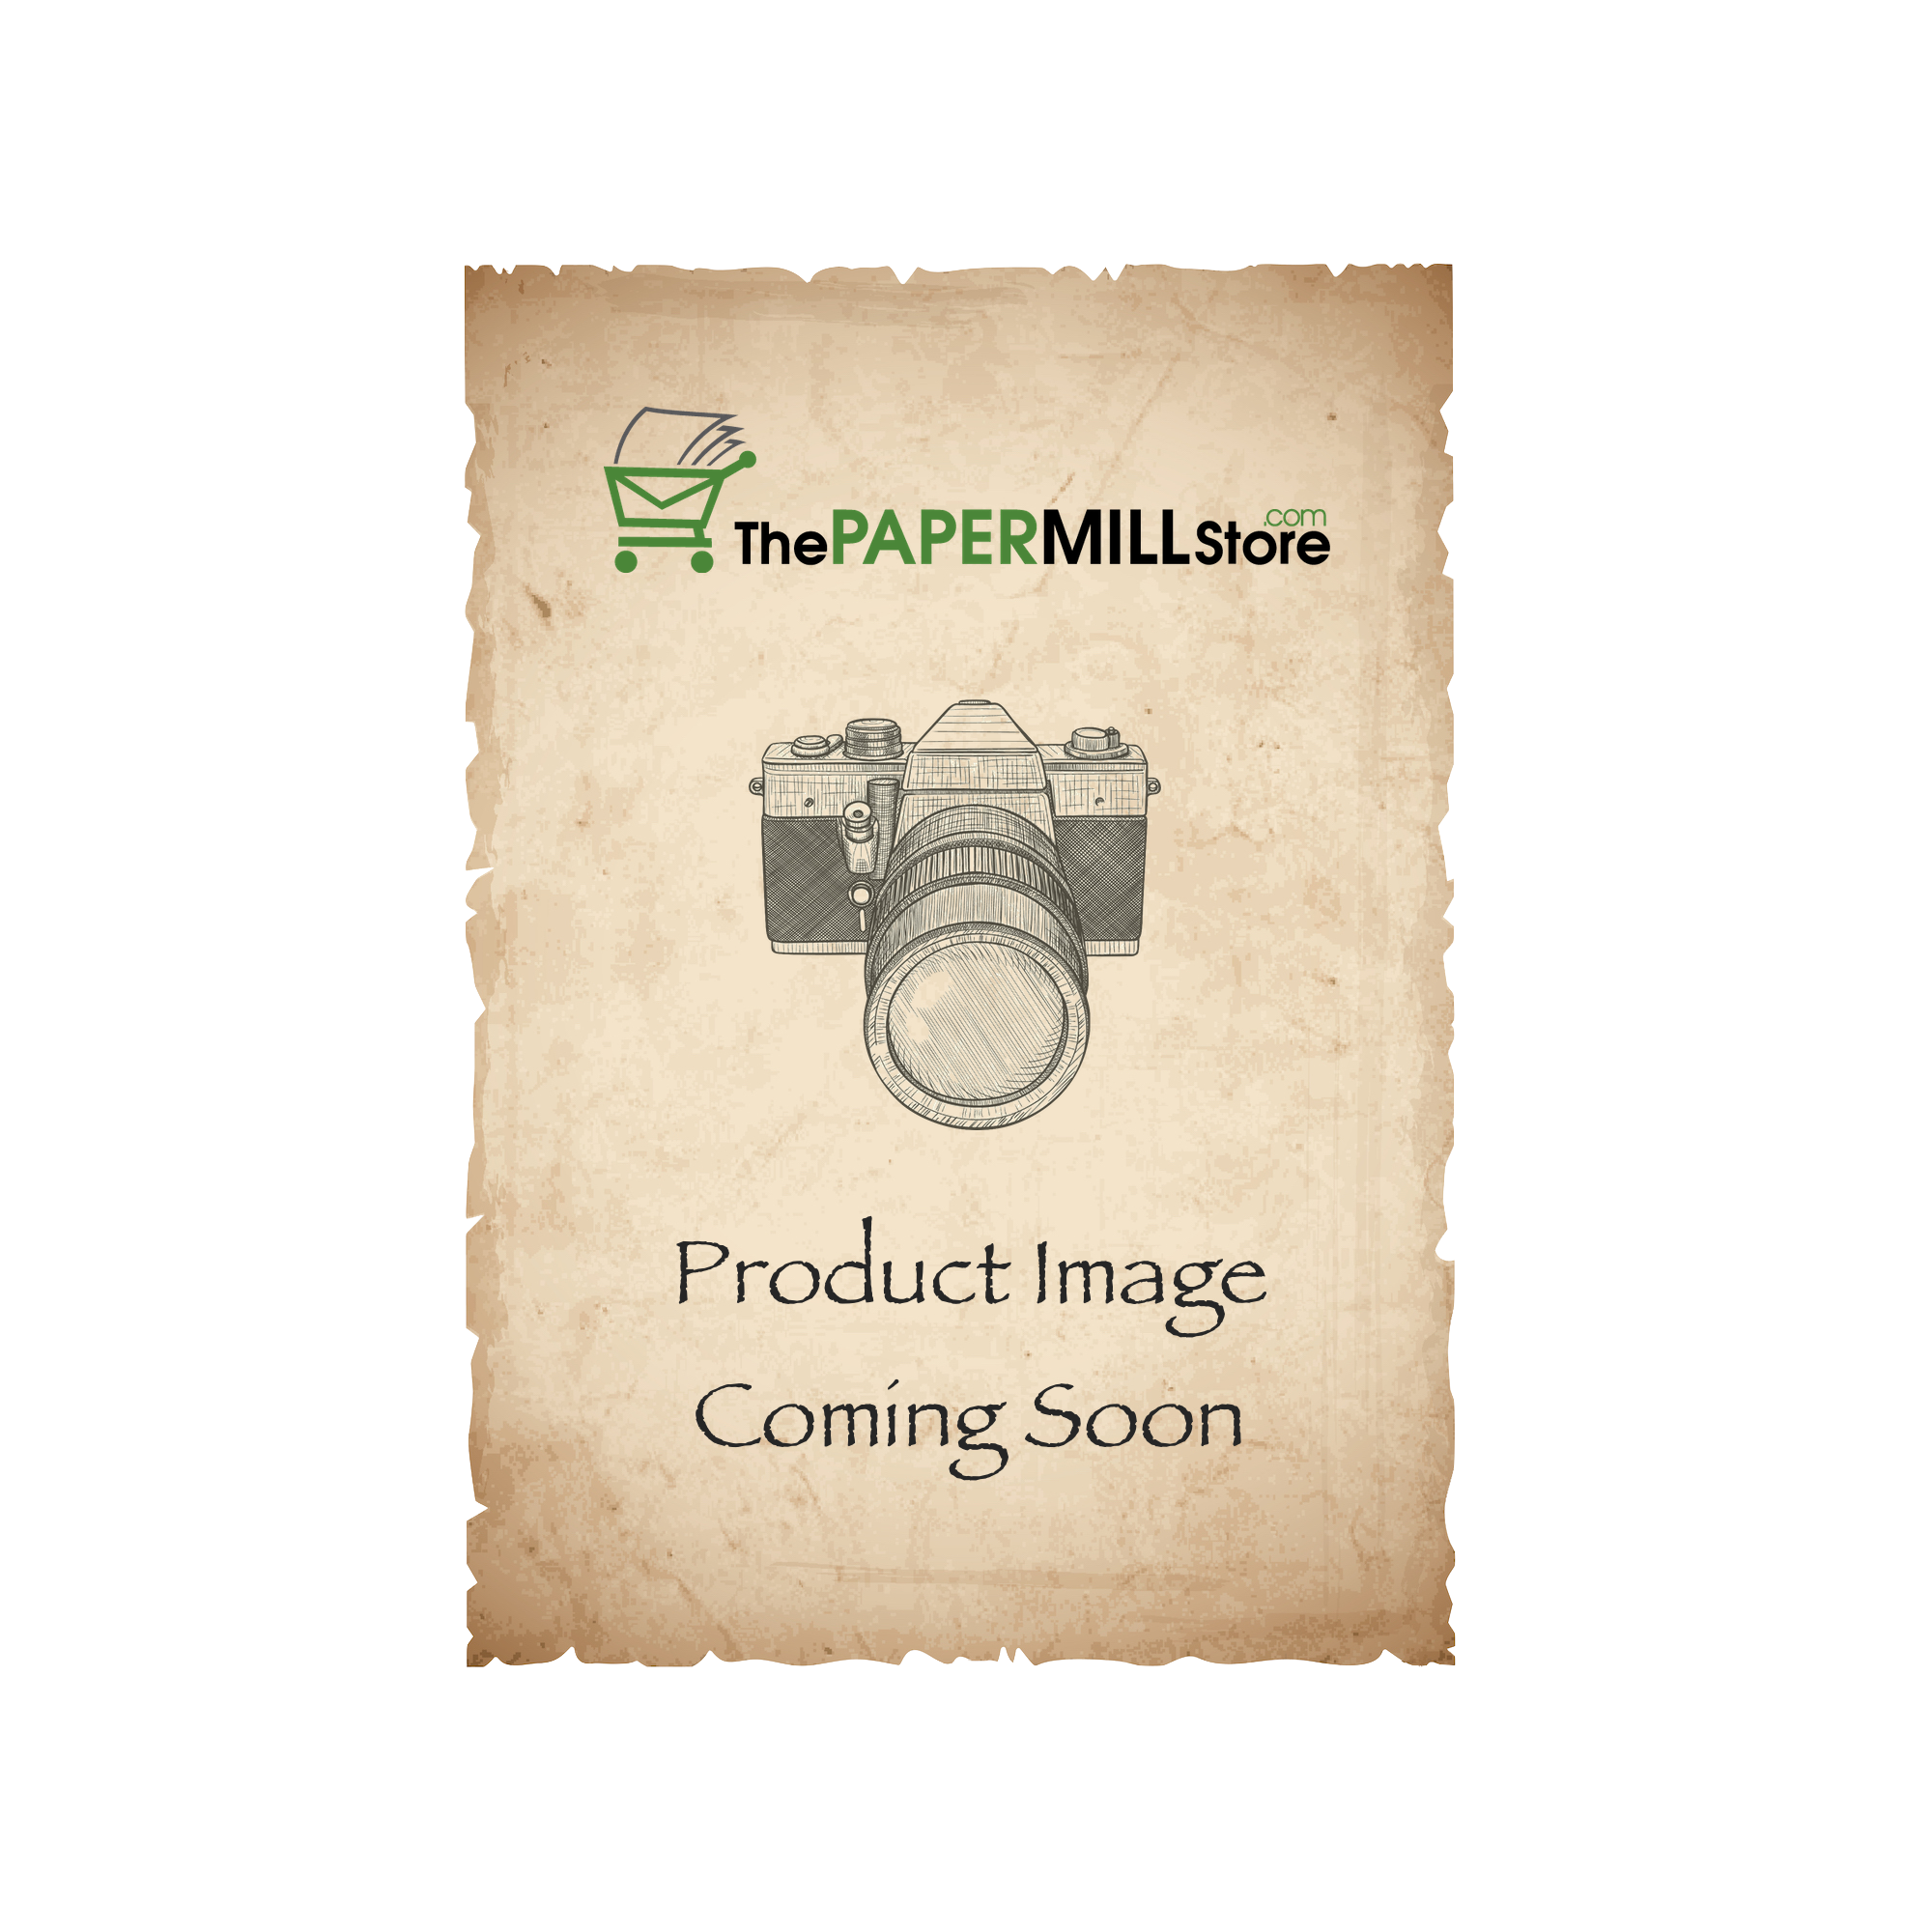 Buy Loop Feltmark White Card Stock - 26 x 40 in 110 lb Cover Feltmark  100% Recycled 300 per Carton at The Paper Mill Store .com